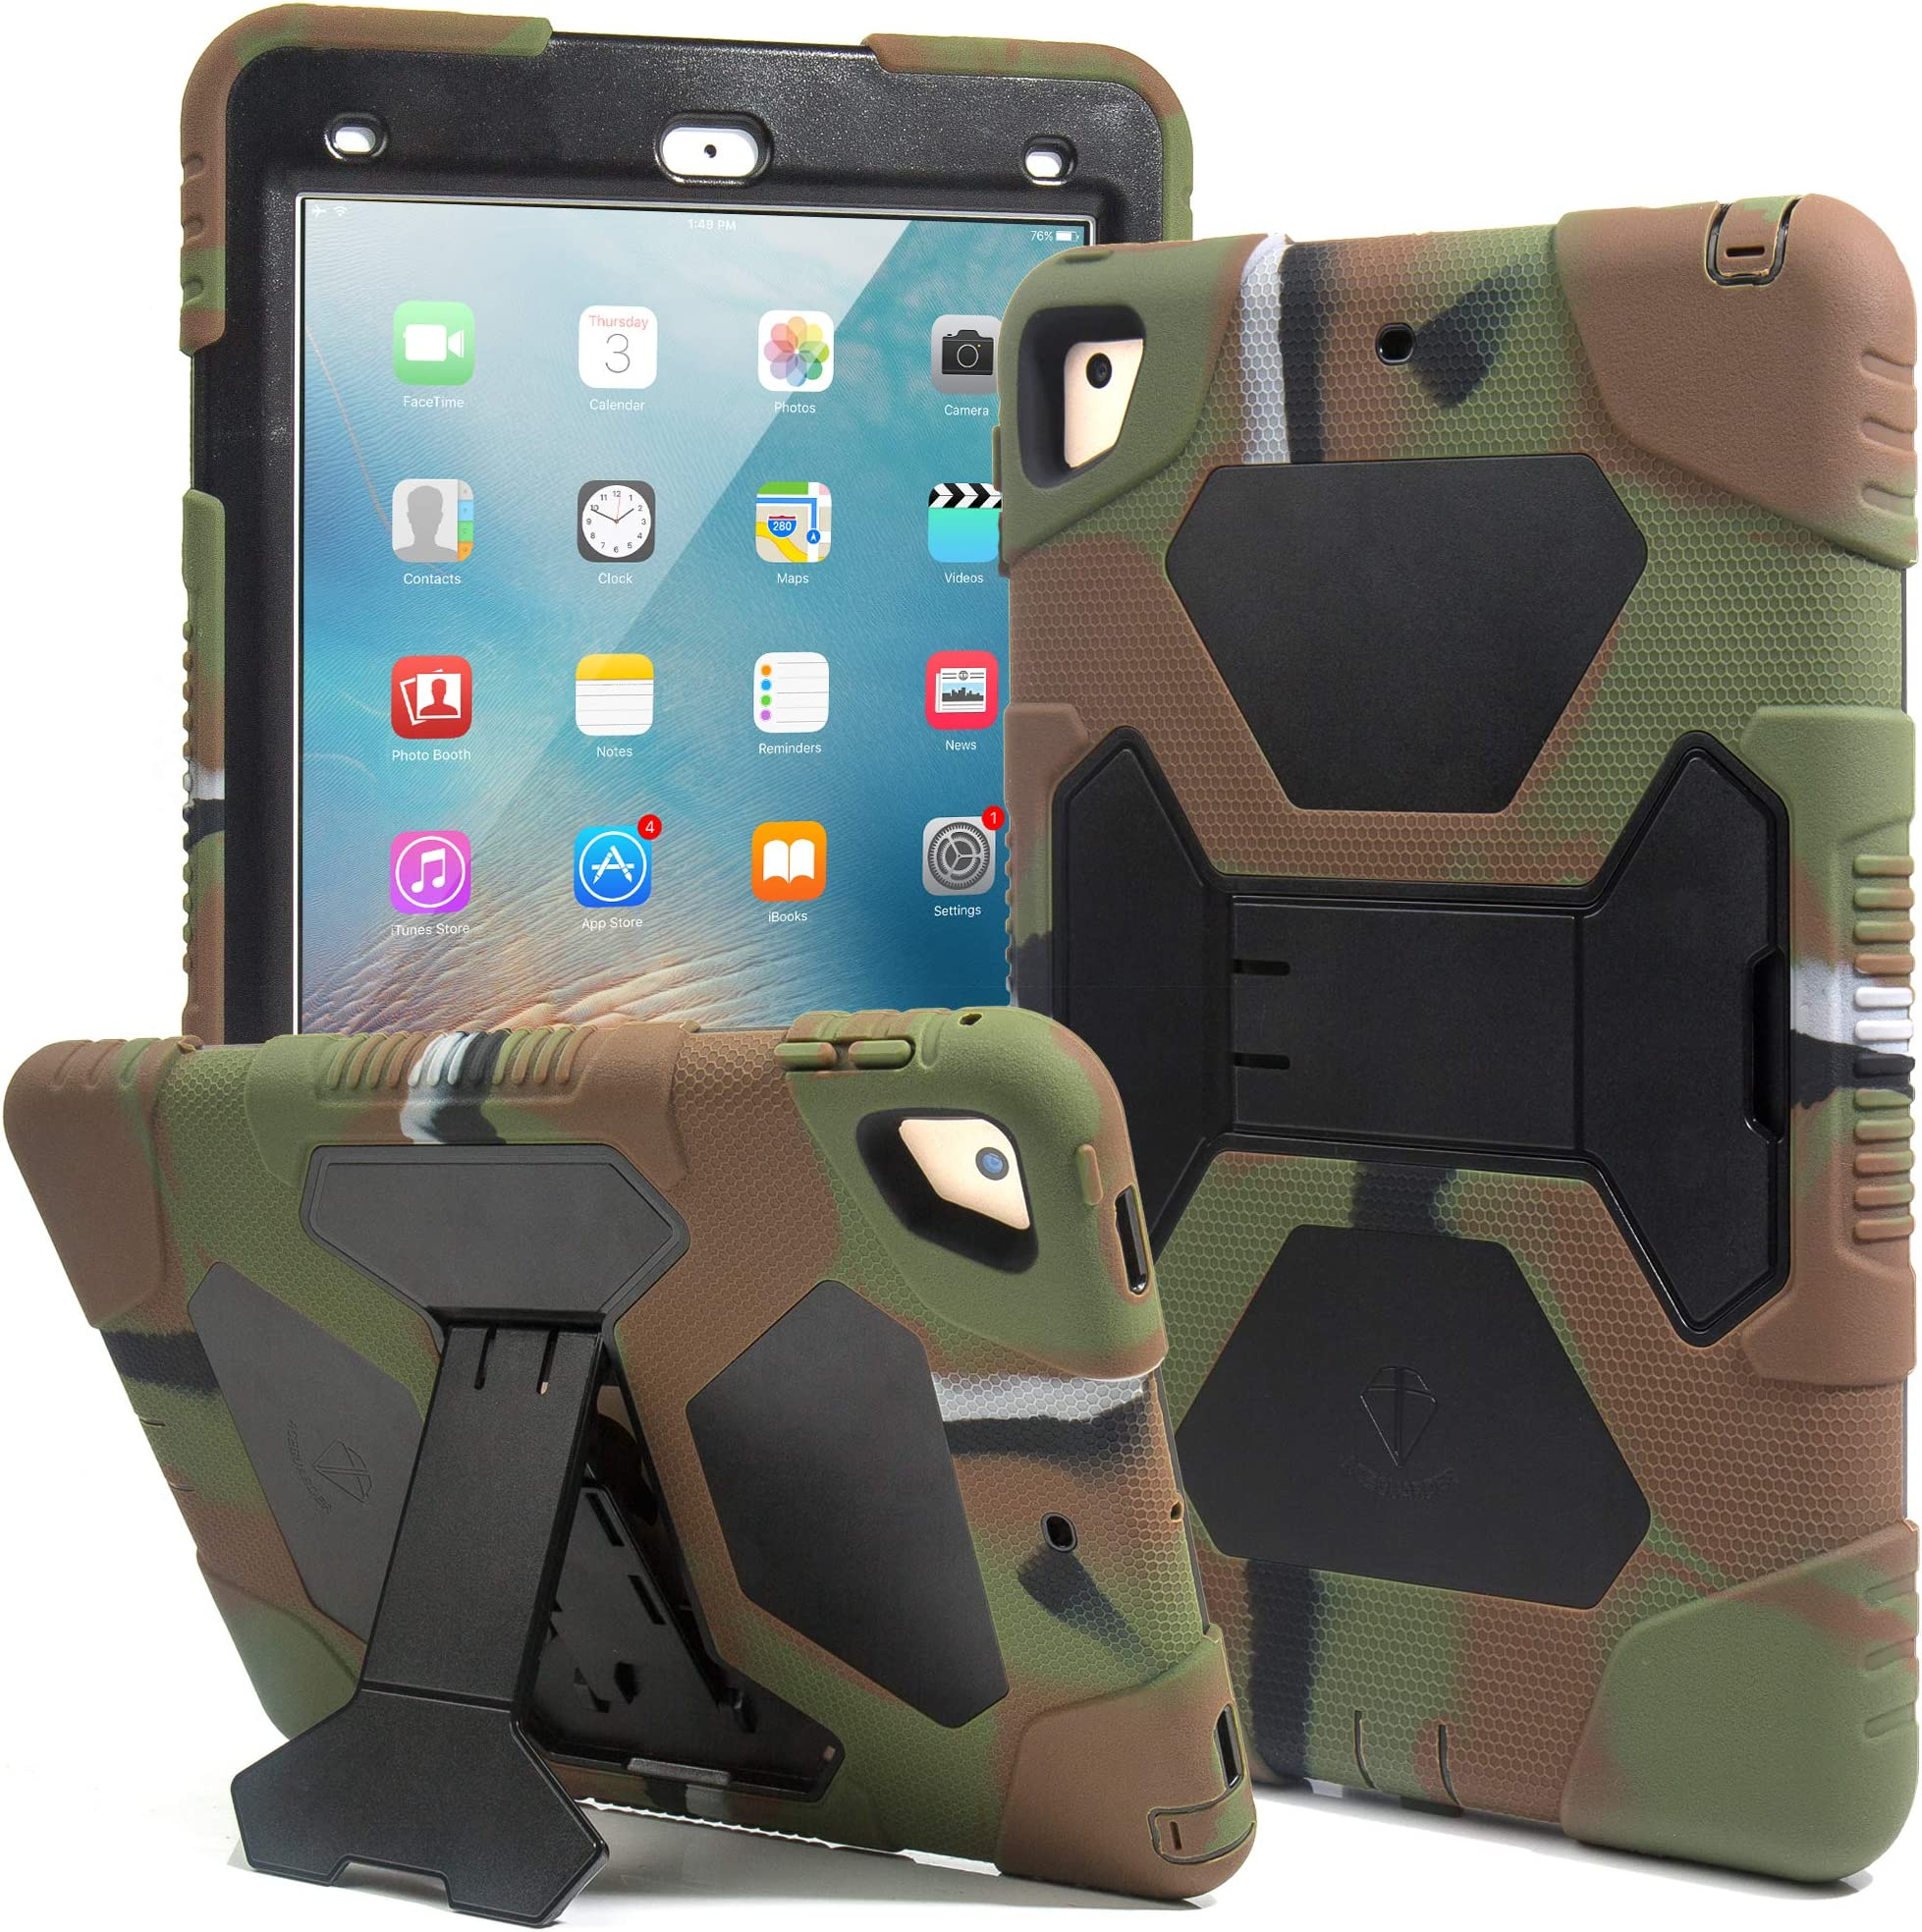 Kids Case for iPad 9.7 2018/2017, iPad Air 2, iPad Pro 9.7 Case Full Body Protective Silicone Cover Adjustable Kickstand for Apple iPad 9.7 5th / 6th Generation (Army/Black)